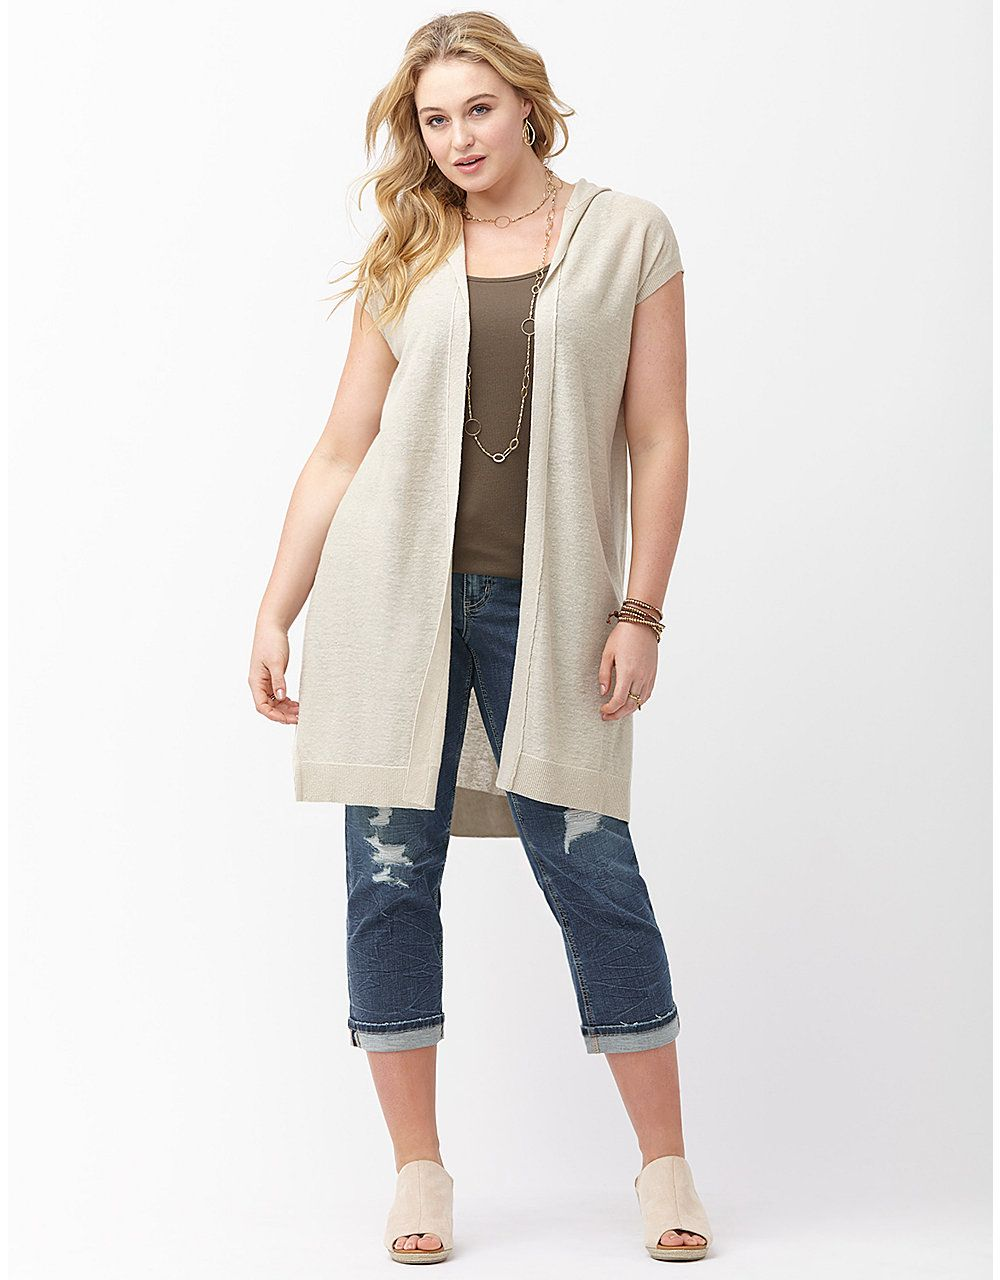 b85f72d2c7f Hooded overpiece by Lane Bryant